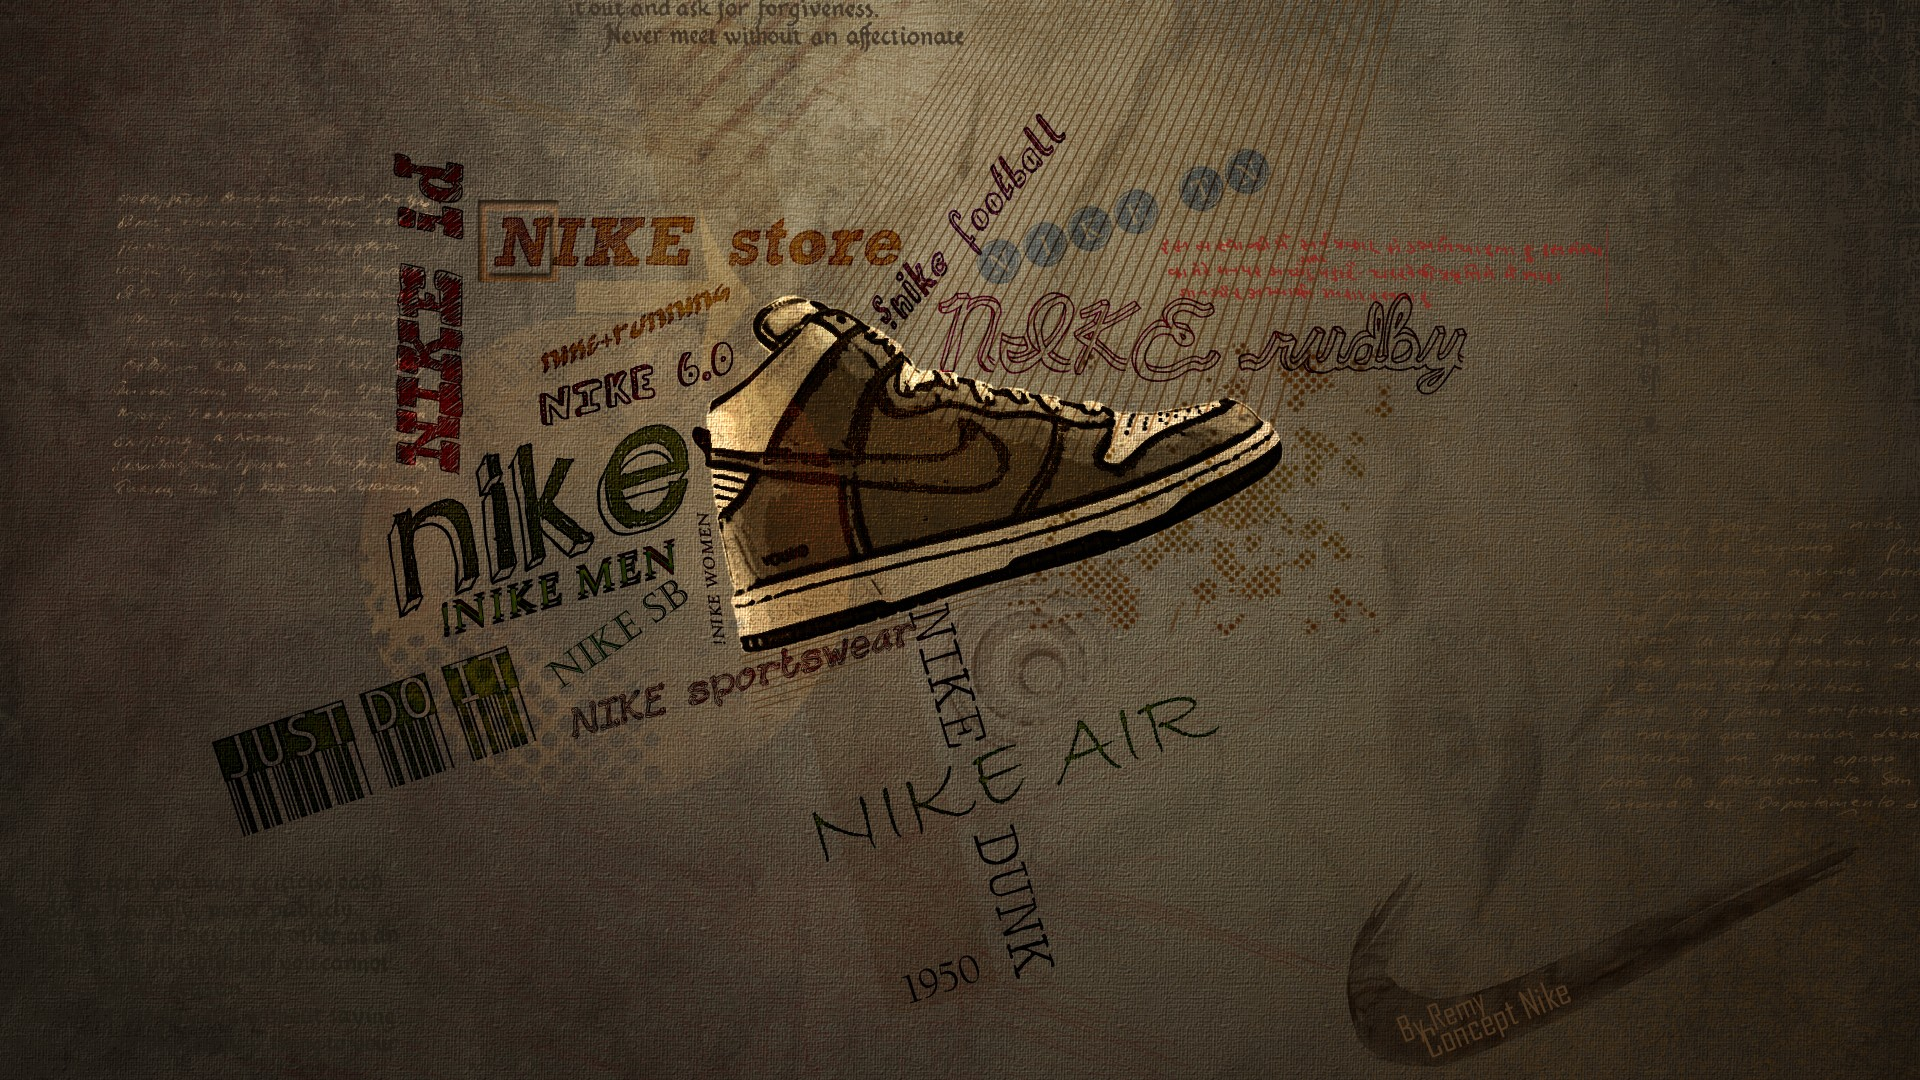 Hd wallpaper nike - Hd Wallpaper Nike 50